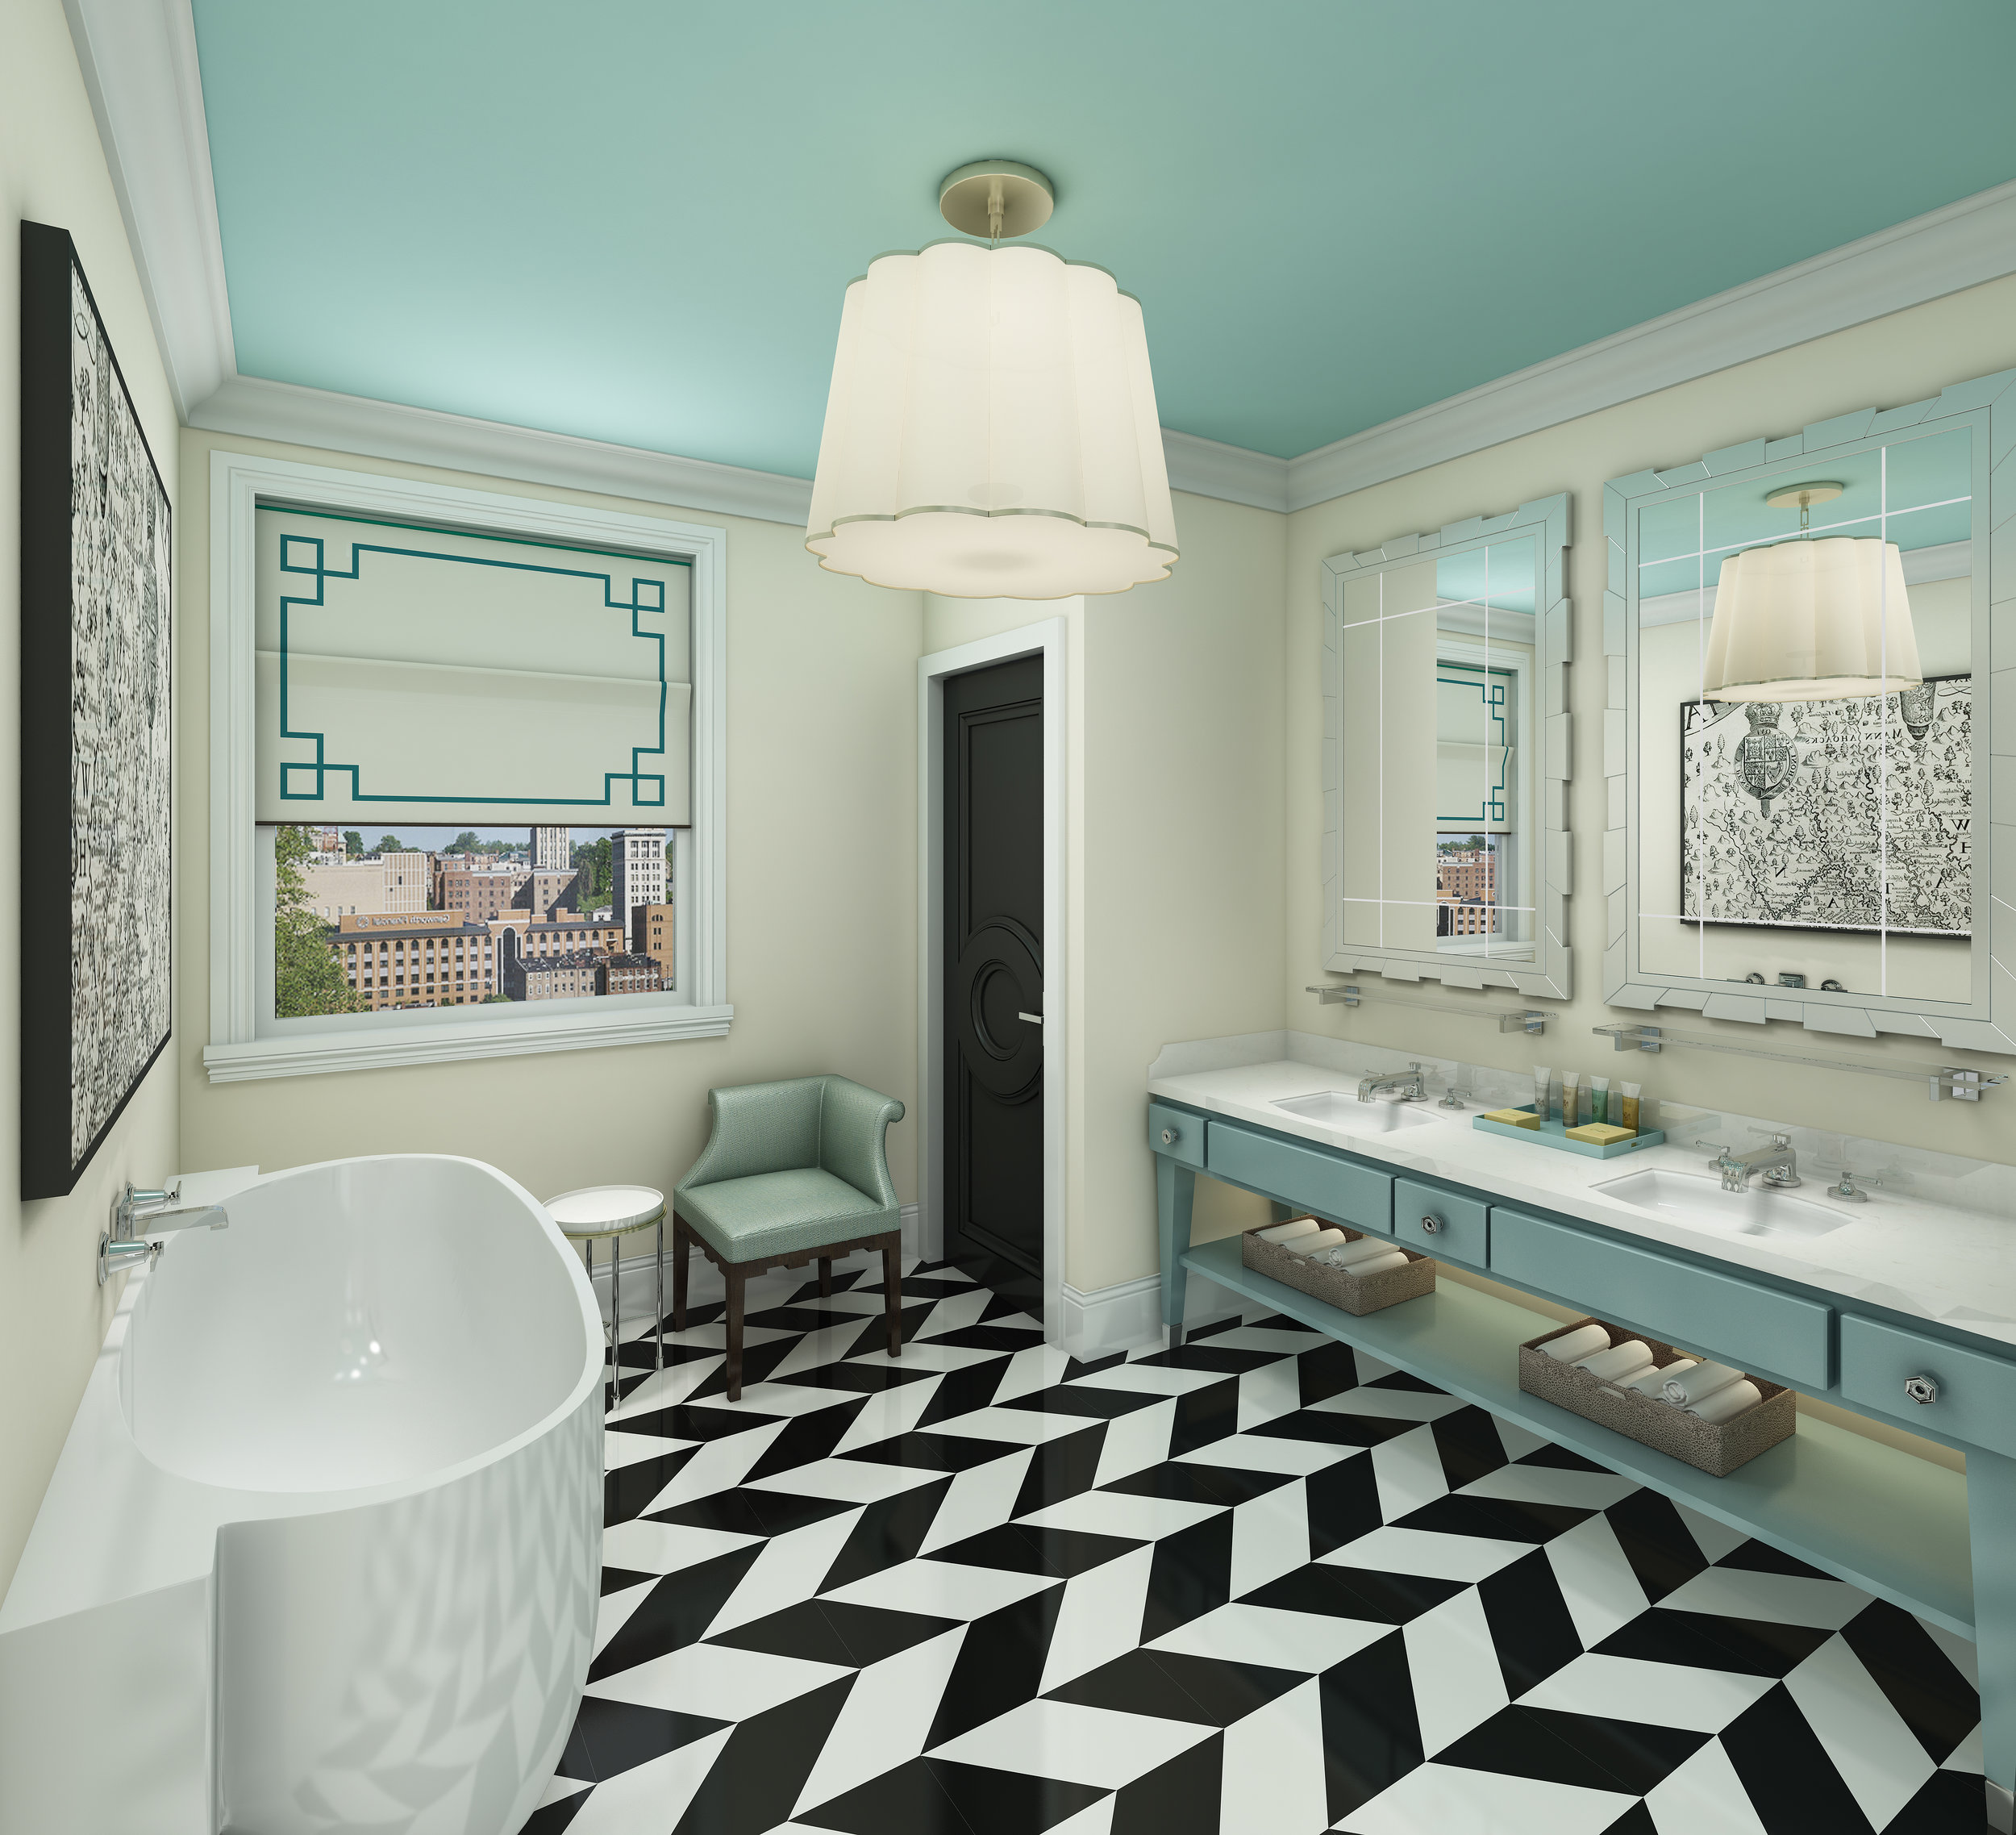 The bathroom is all about the story of the building. The stylistic elements draw upon the host city and state.